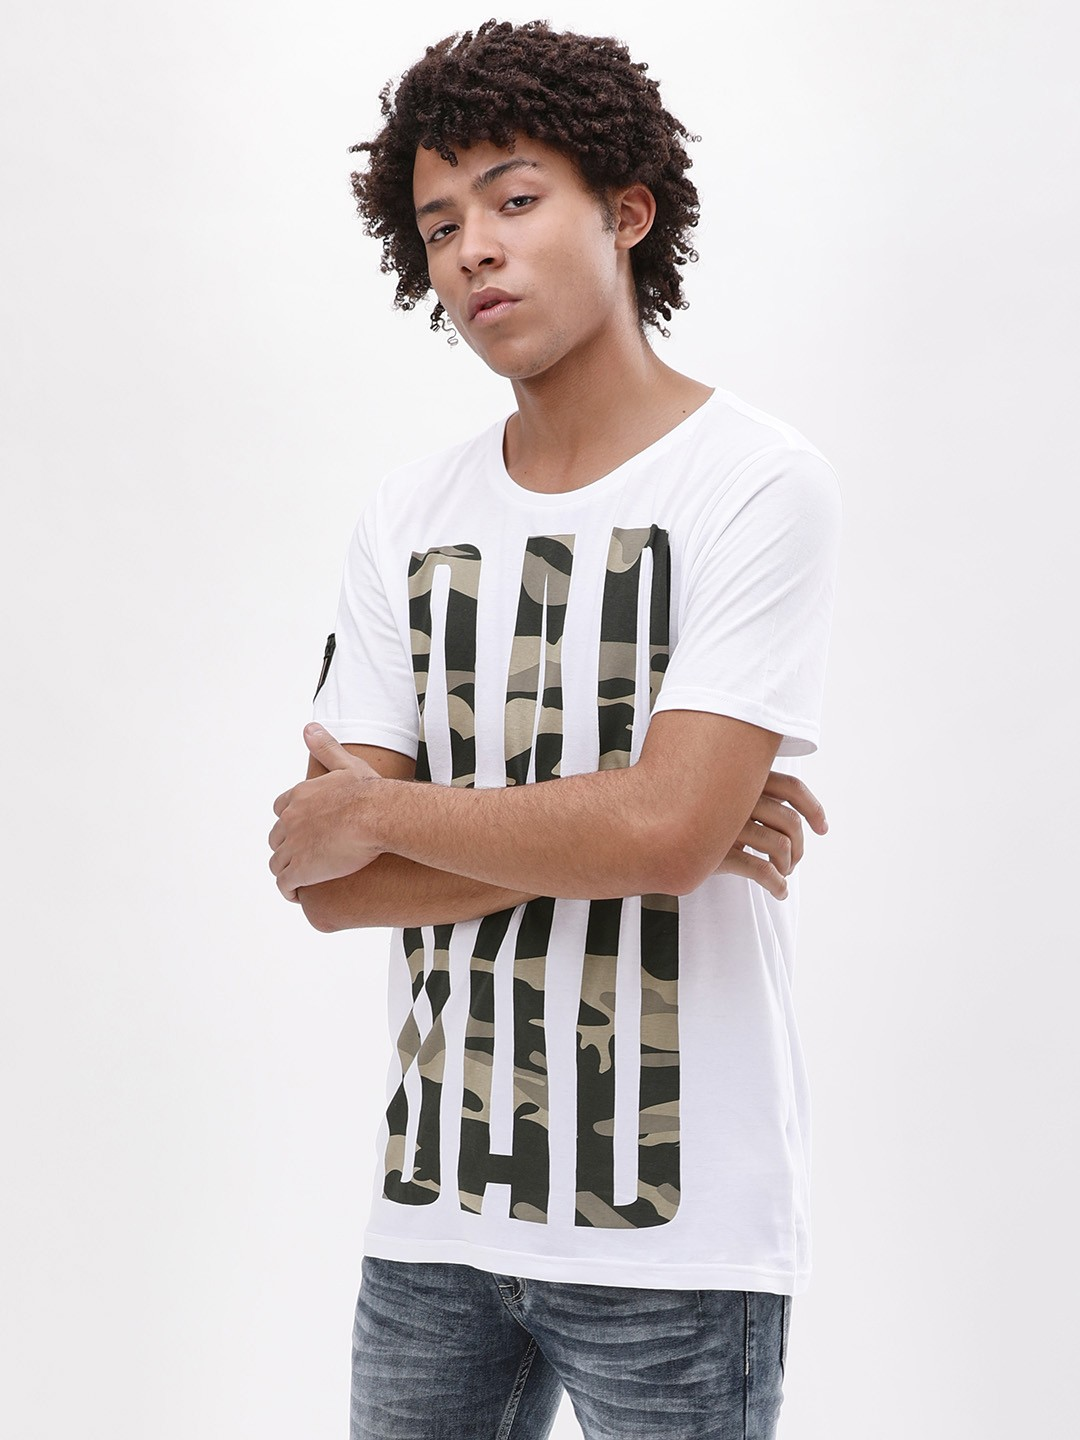 Adamo London White Camo Text Print T-Shirt 1